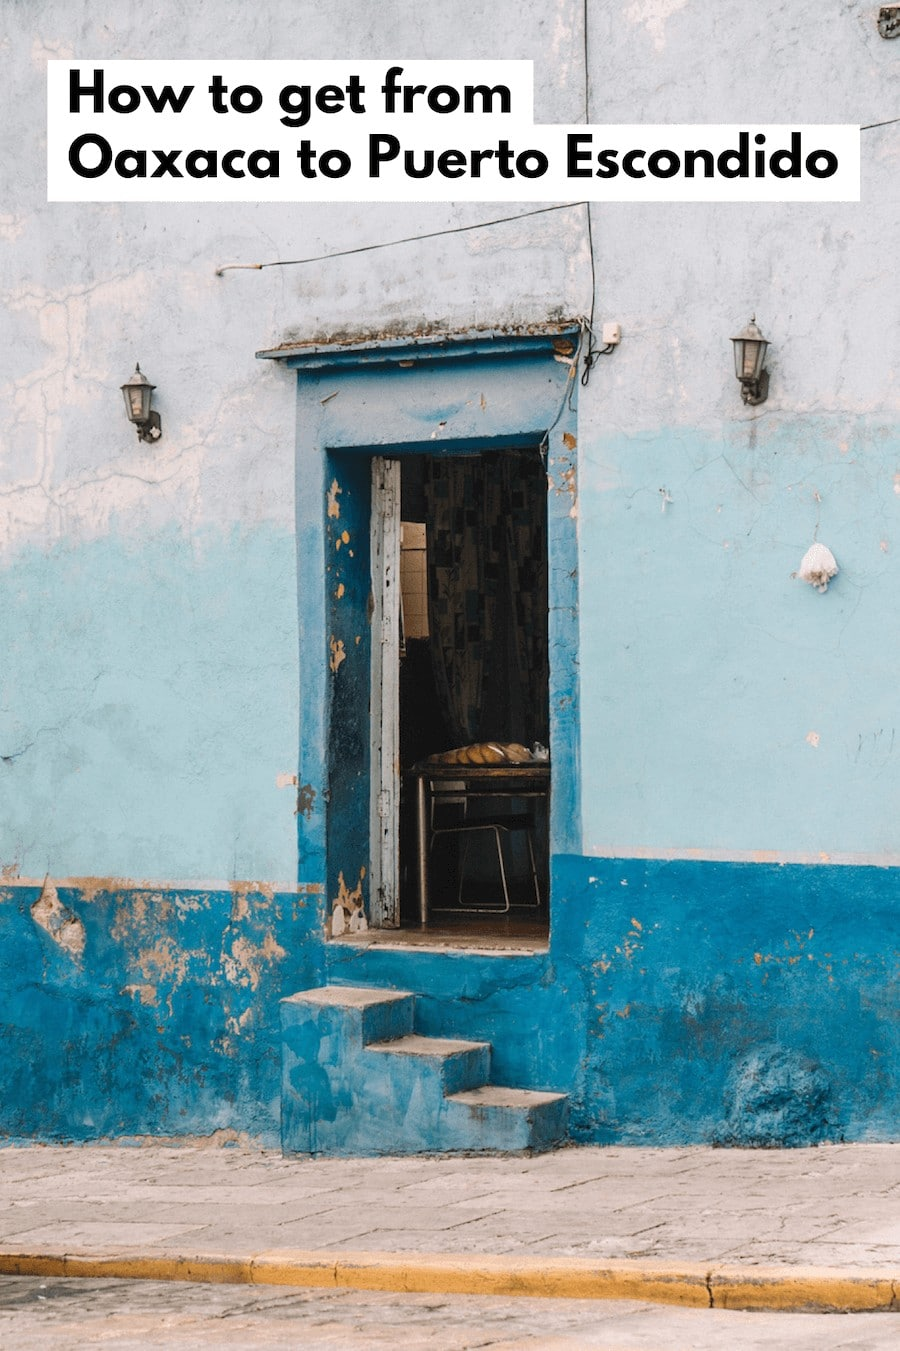 Doorway in Oaxaca with shades of crackled blue paint and text overlay